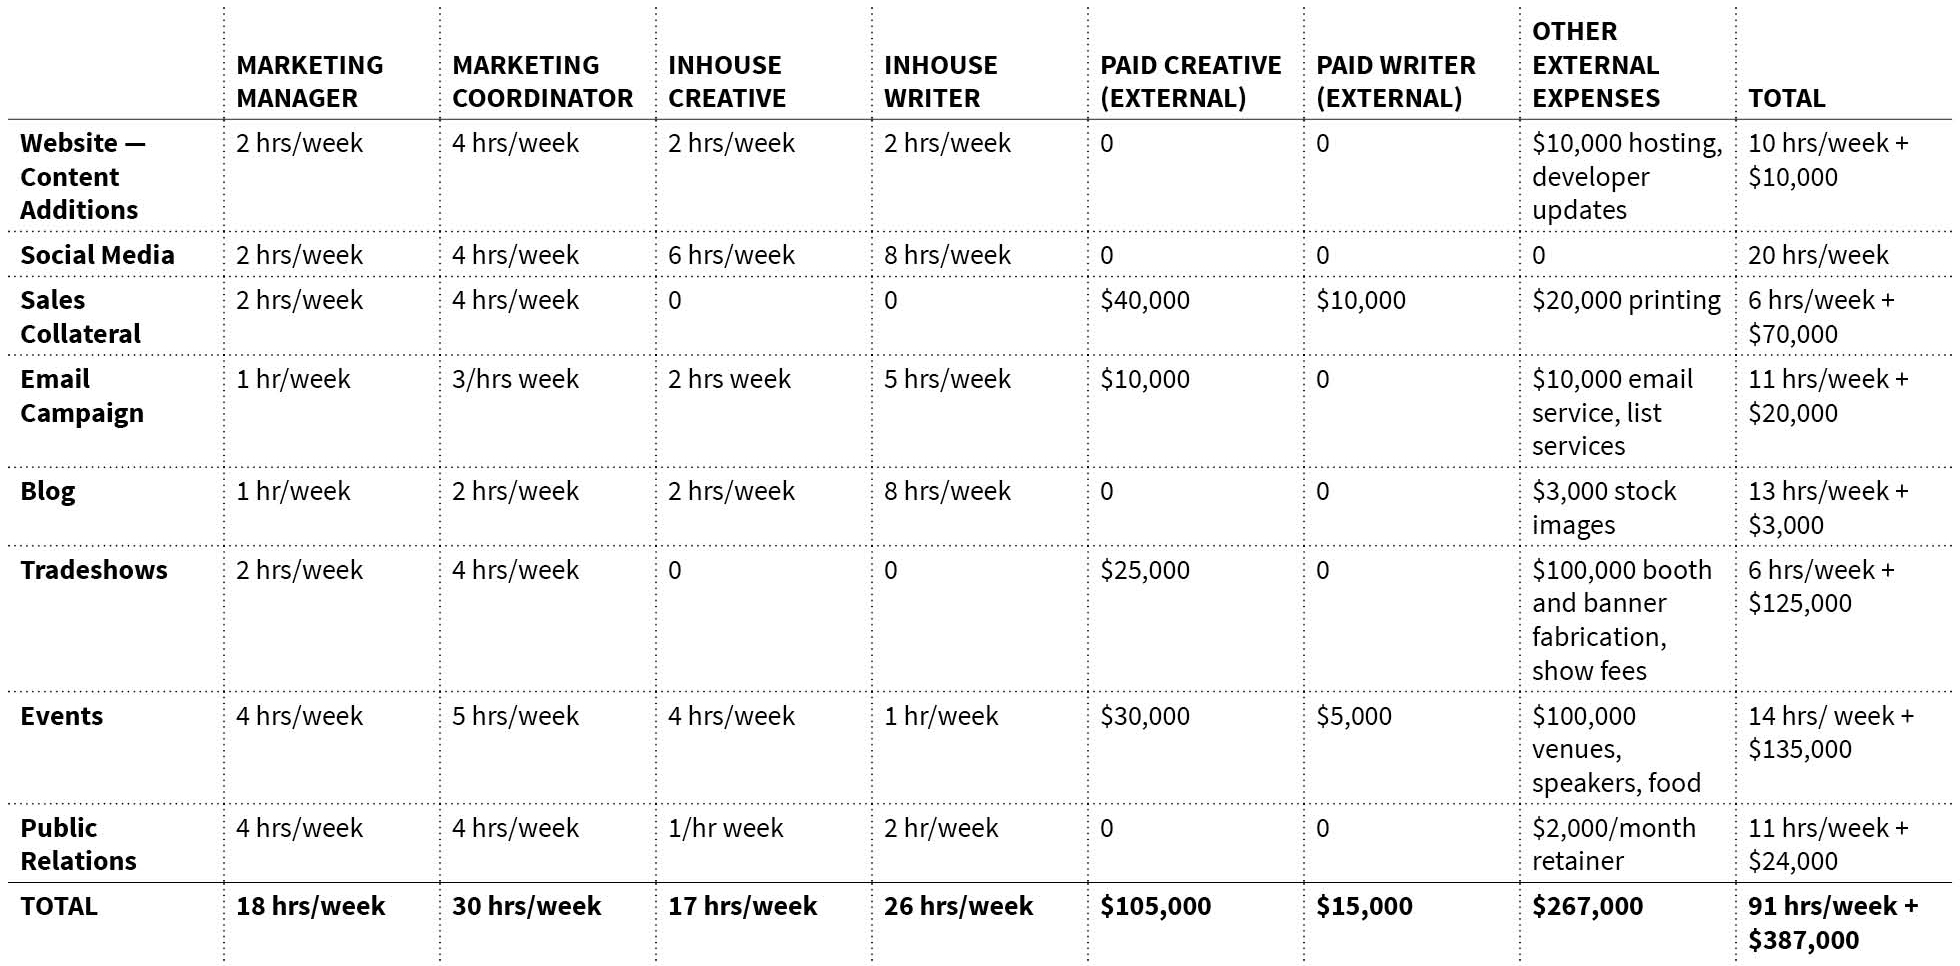 Budgeting For Marketing 5 By 5 Design